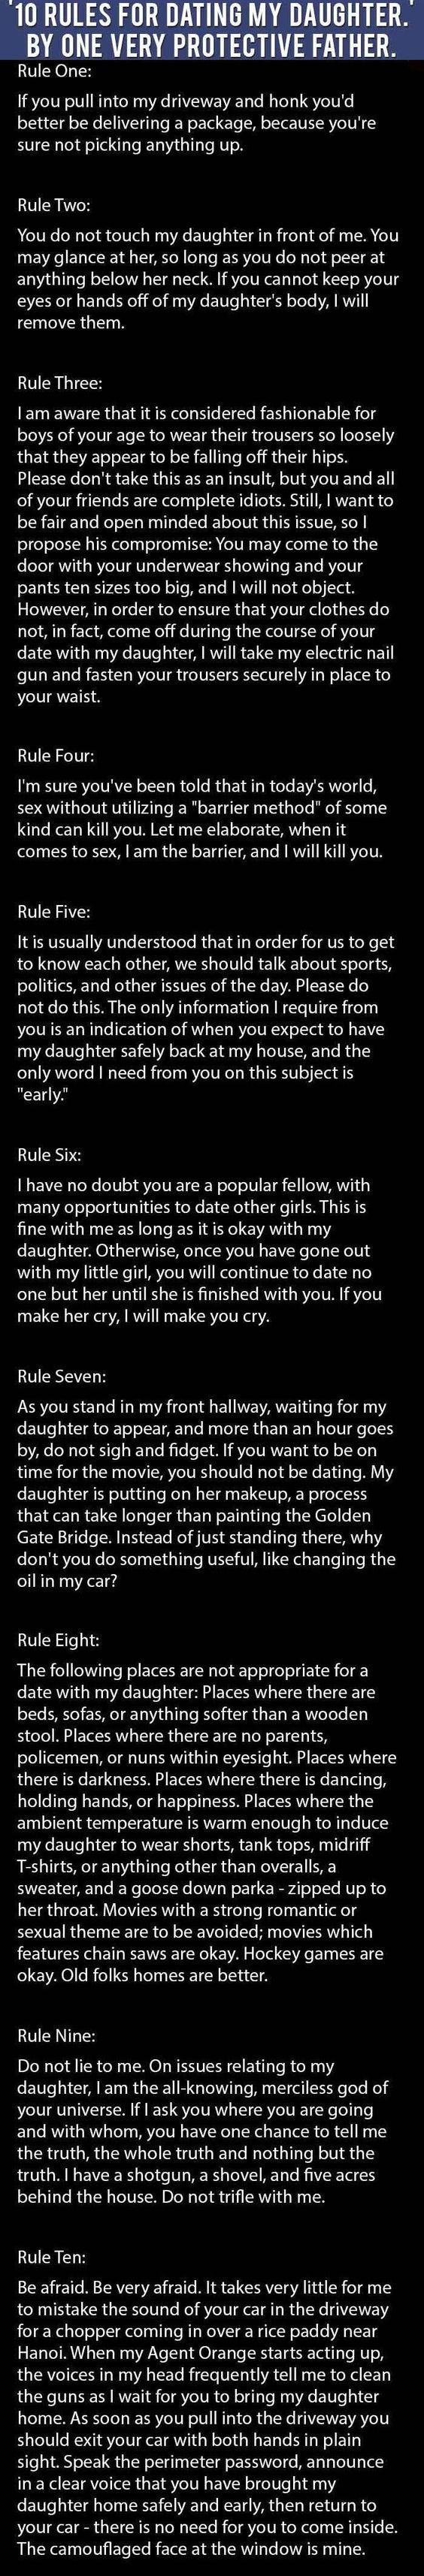 Rules for dating my daughter agent orange